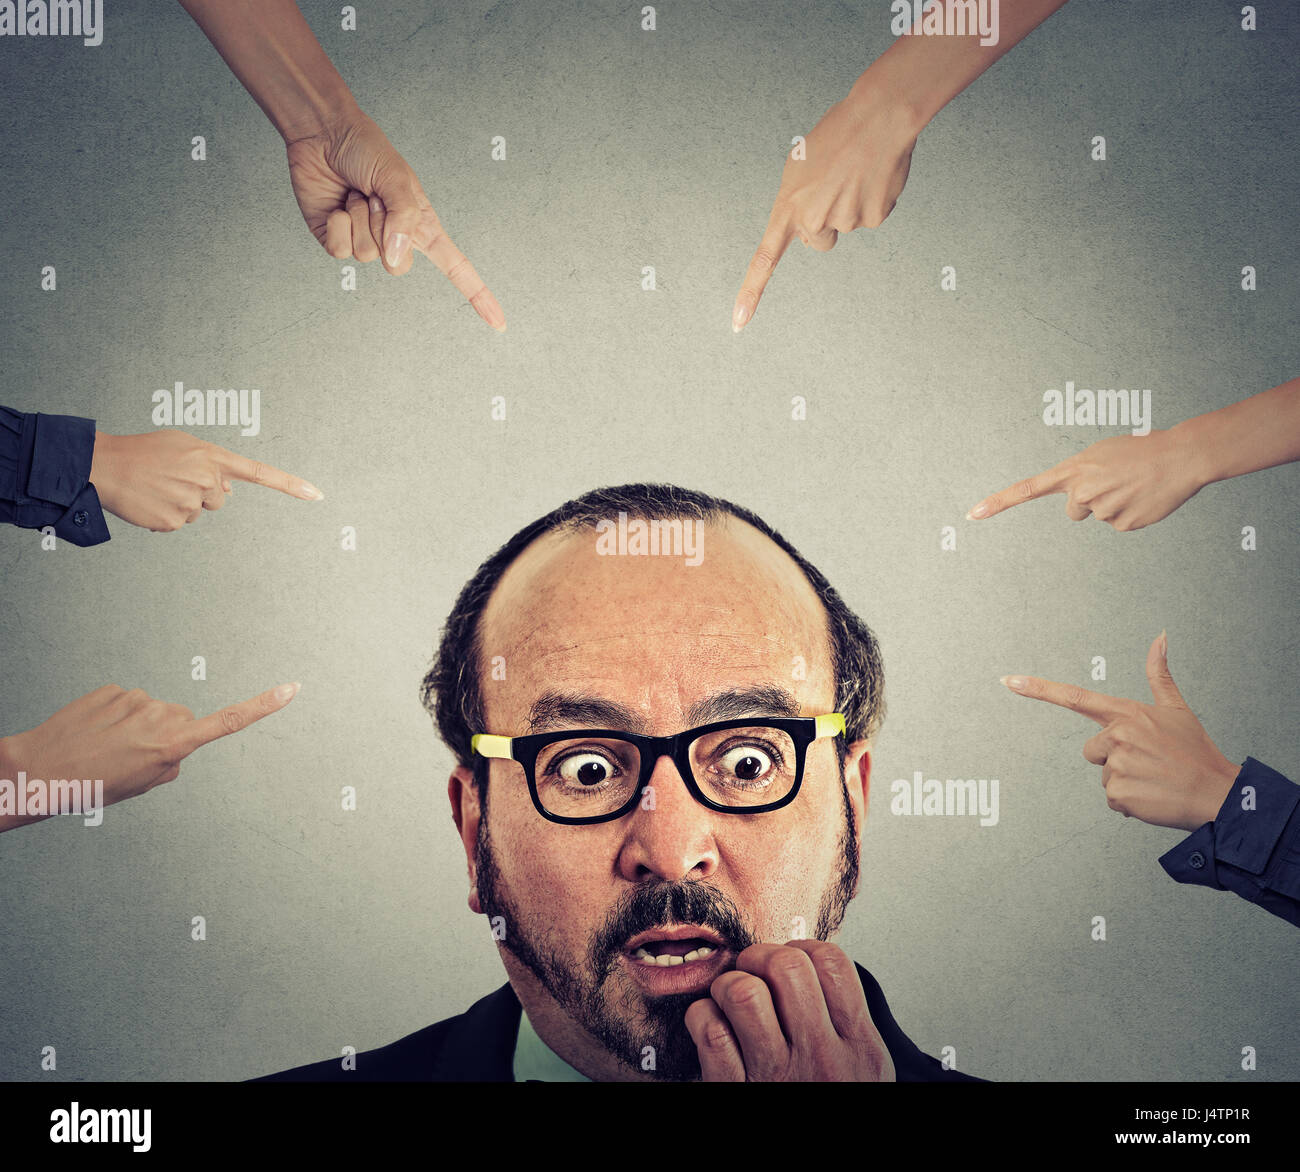 Image result for Finger-of-Accusation